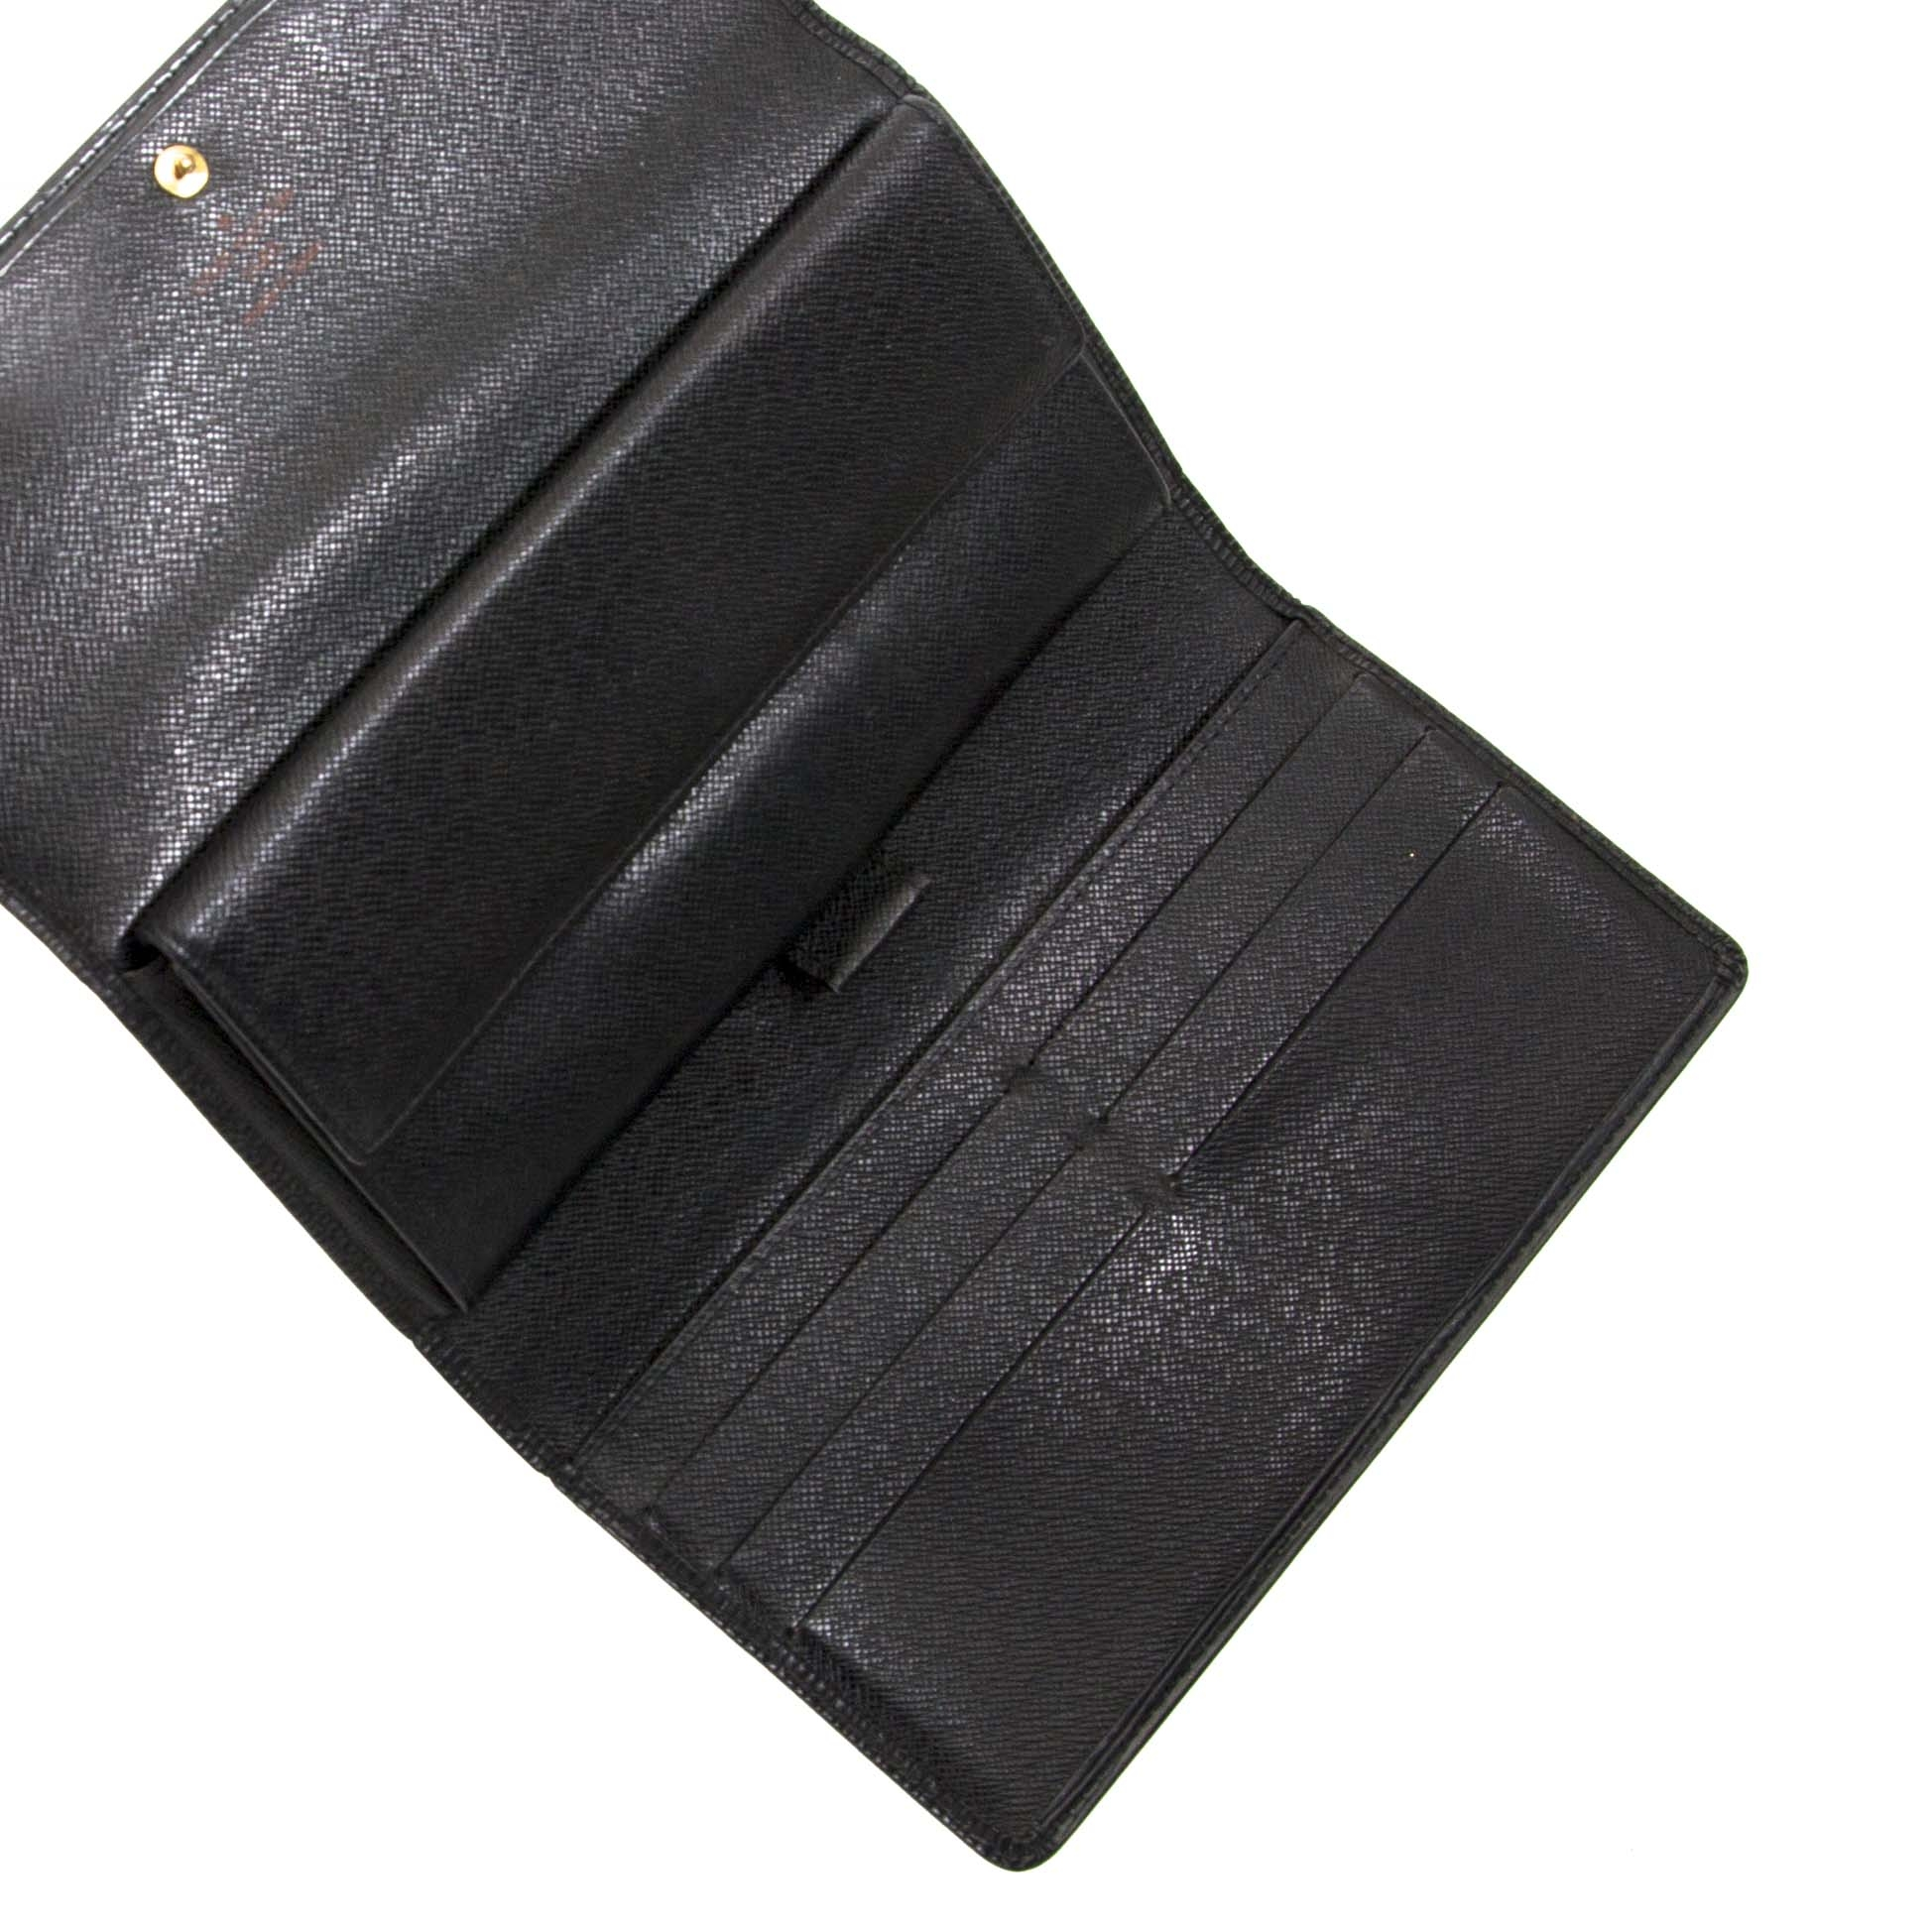 second hand Louis Vuitton Porte-Tresor International Black Epi Leather Wallet now for sale at labellov.com for the best price